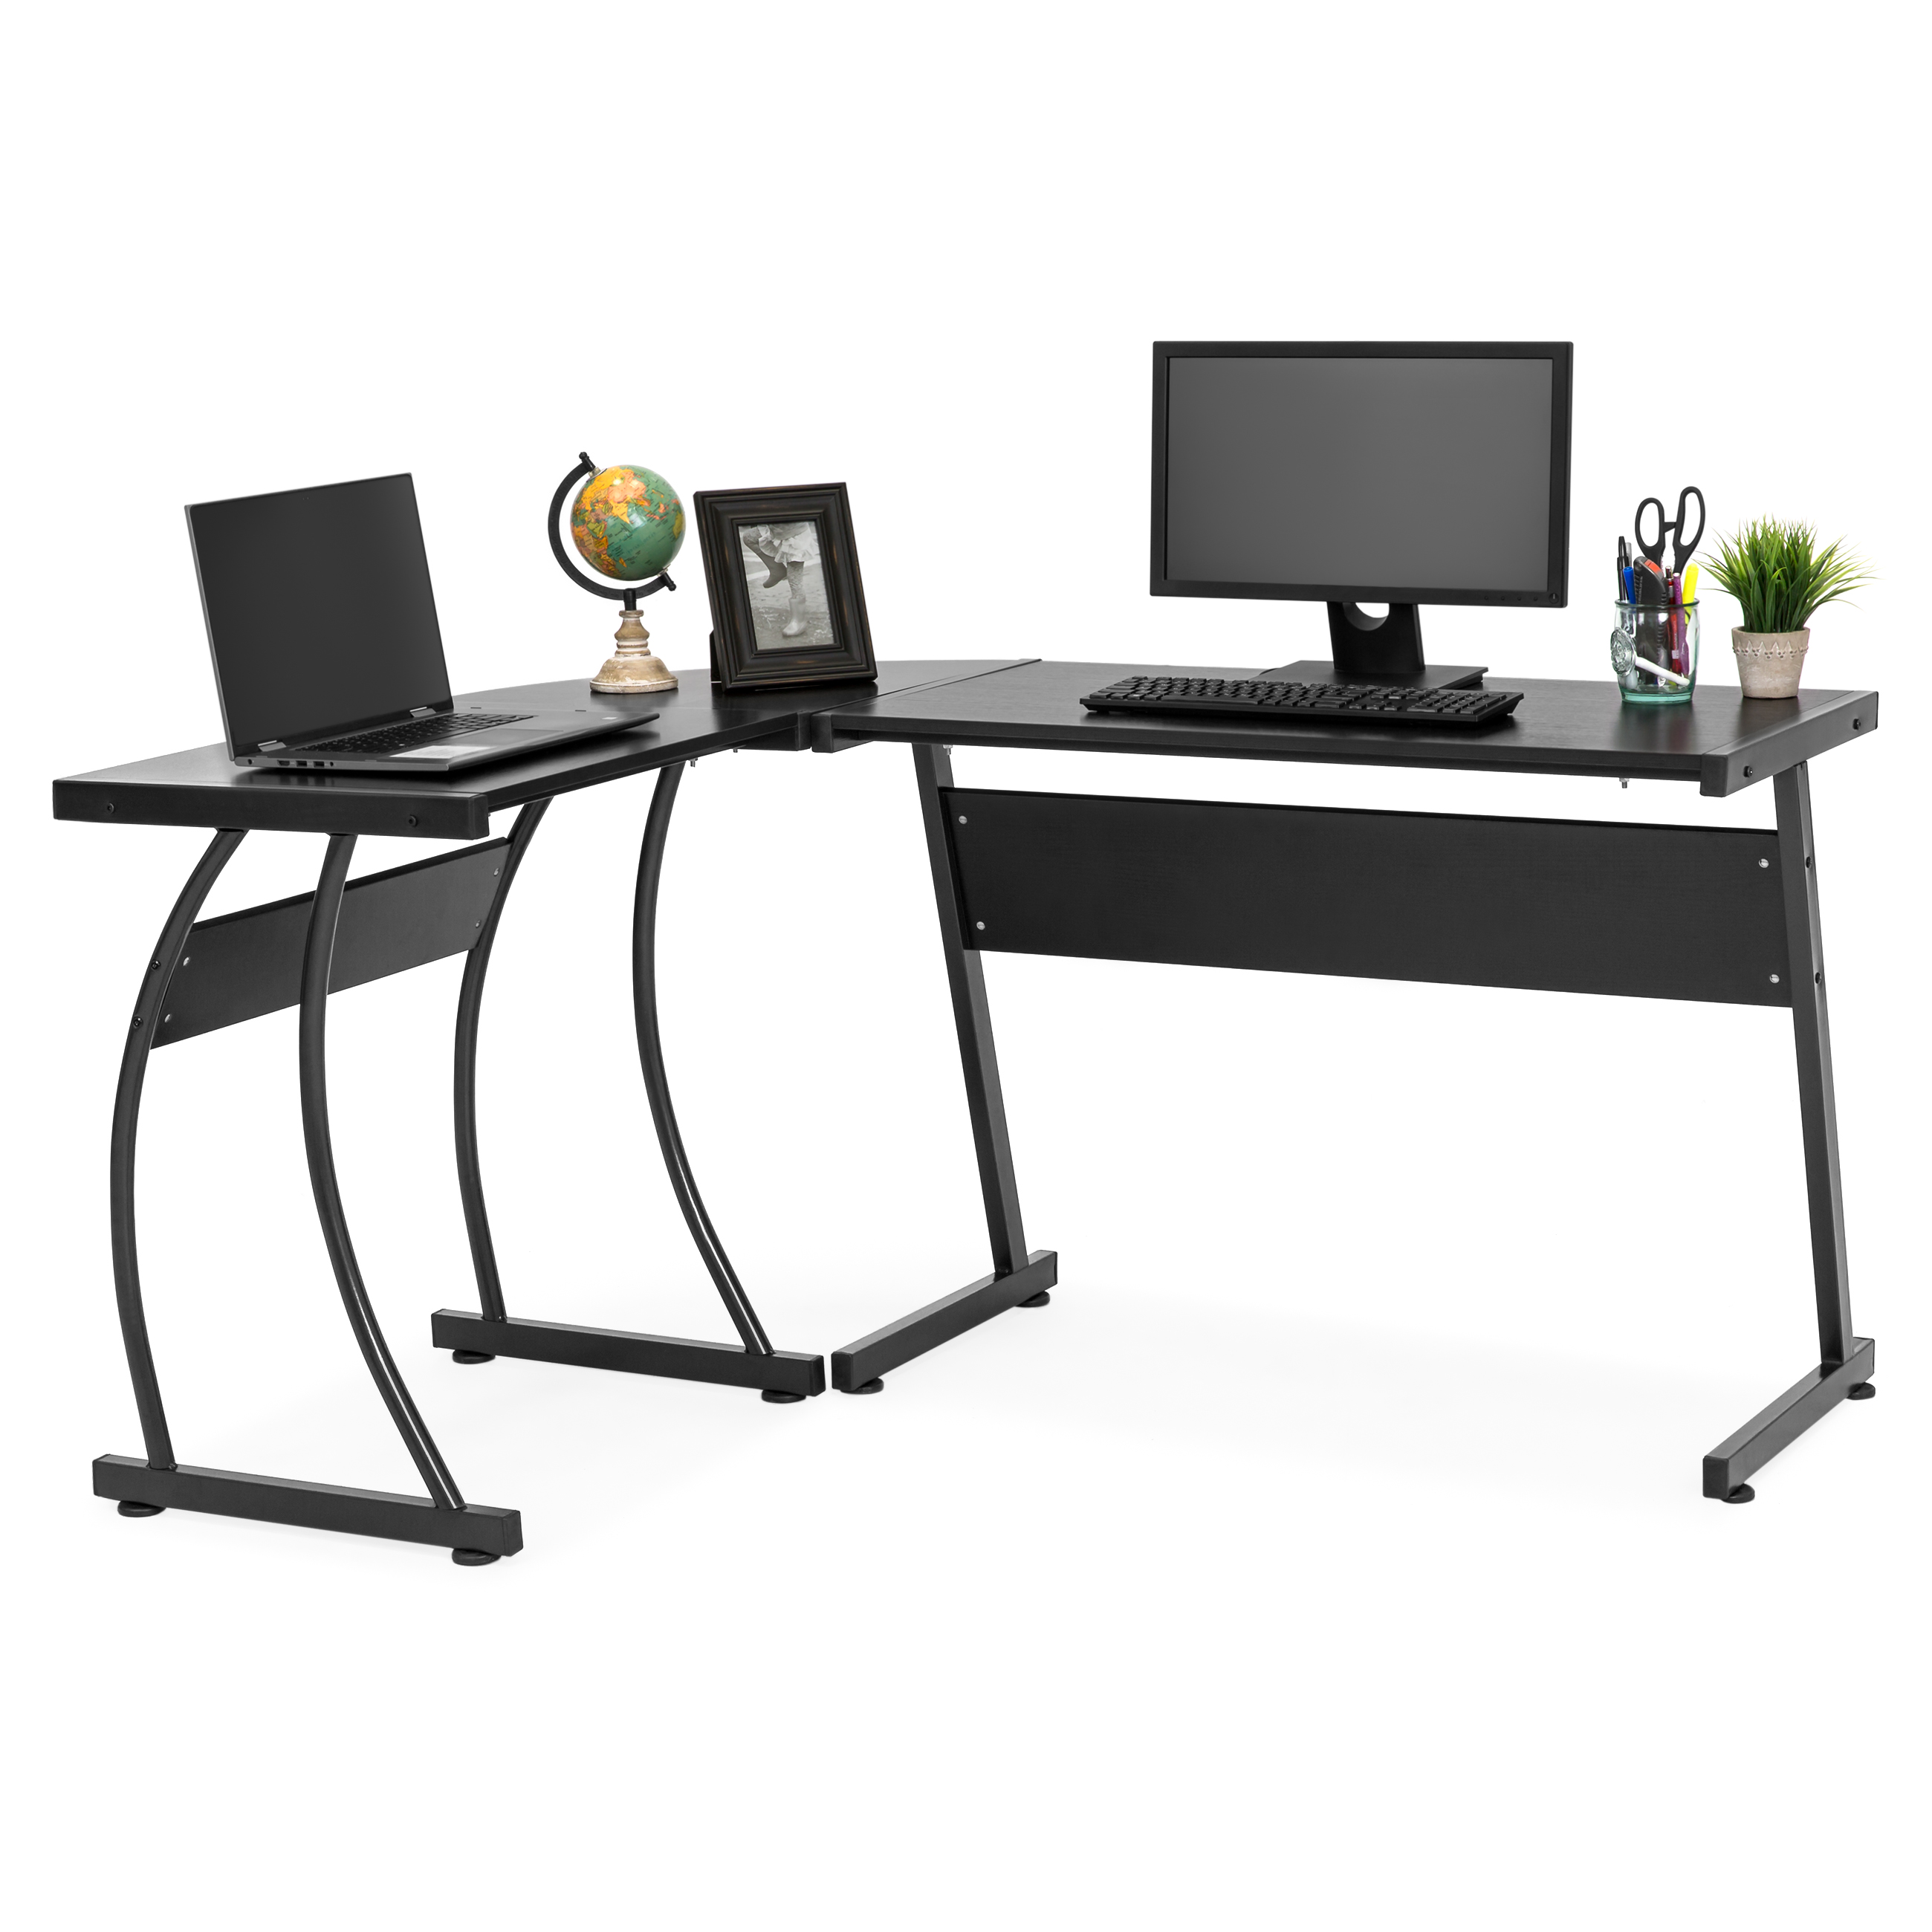 L Shaped Corner Desk Computer Workstation Home Office: Best Choice Products 3-Piece Home Office L-Shaped Corner